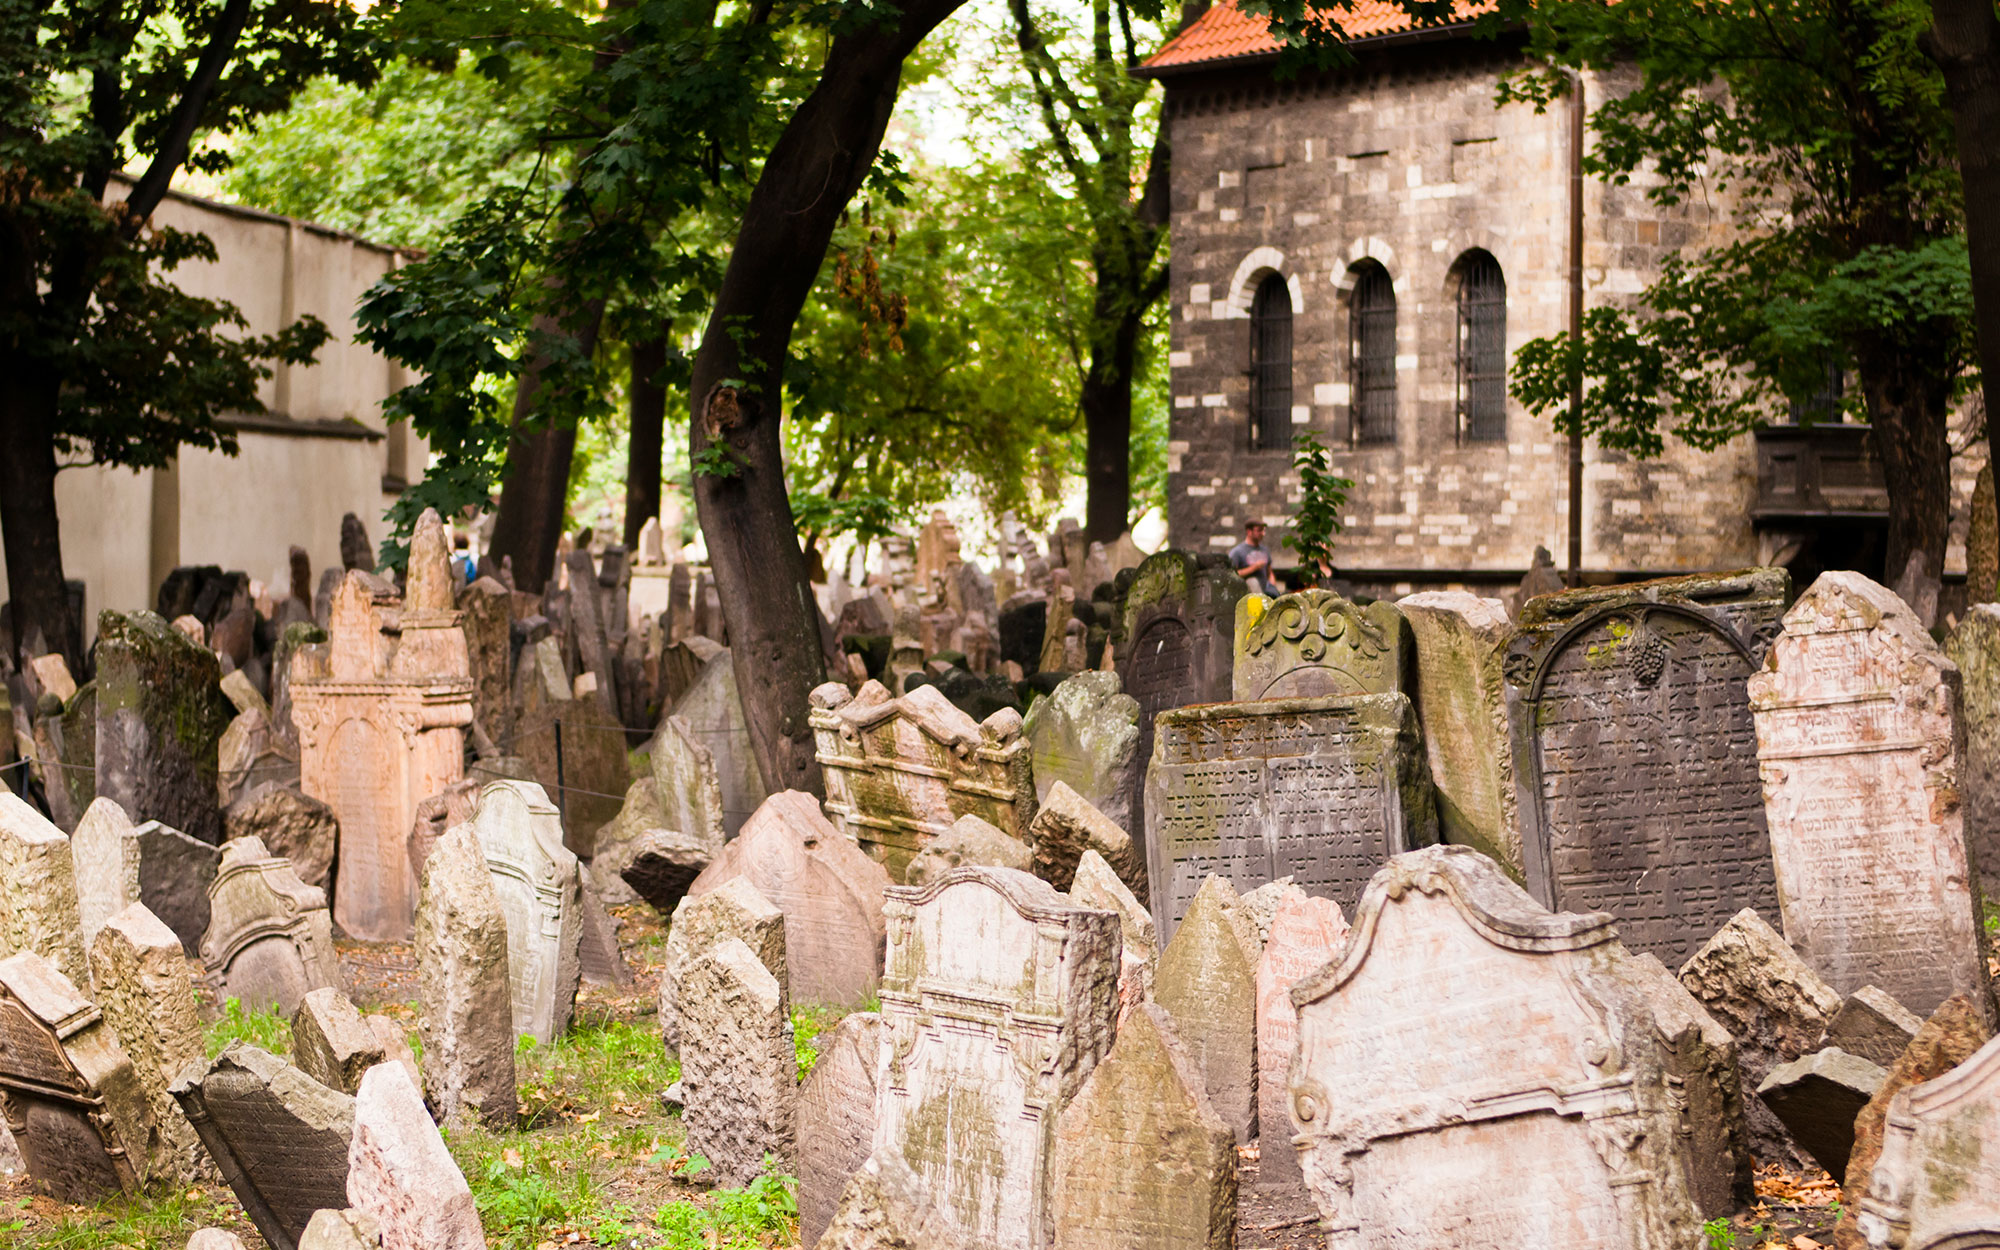 World's Most Beautiful Cemeteries: Old Jewish Cemetery, Czech Republic